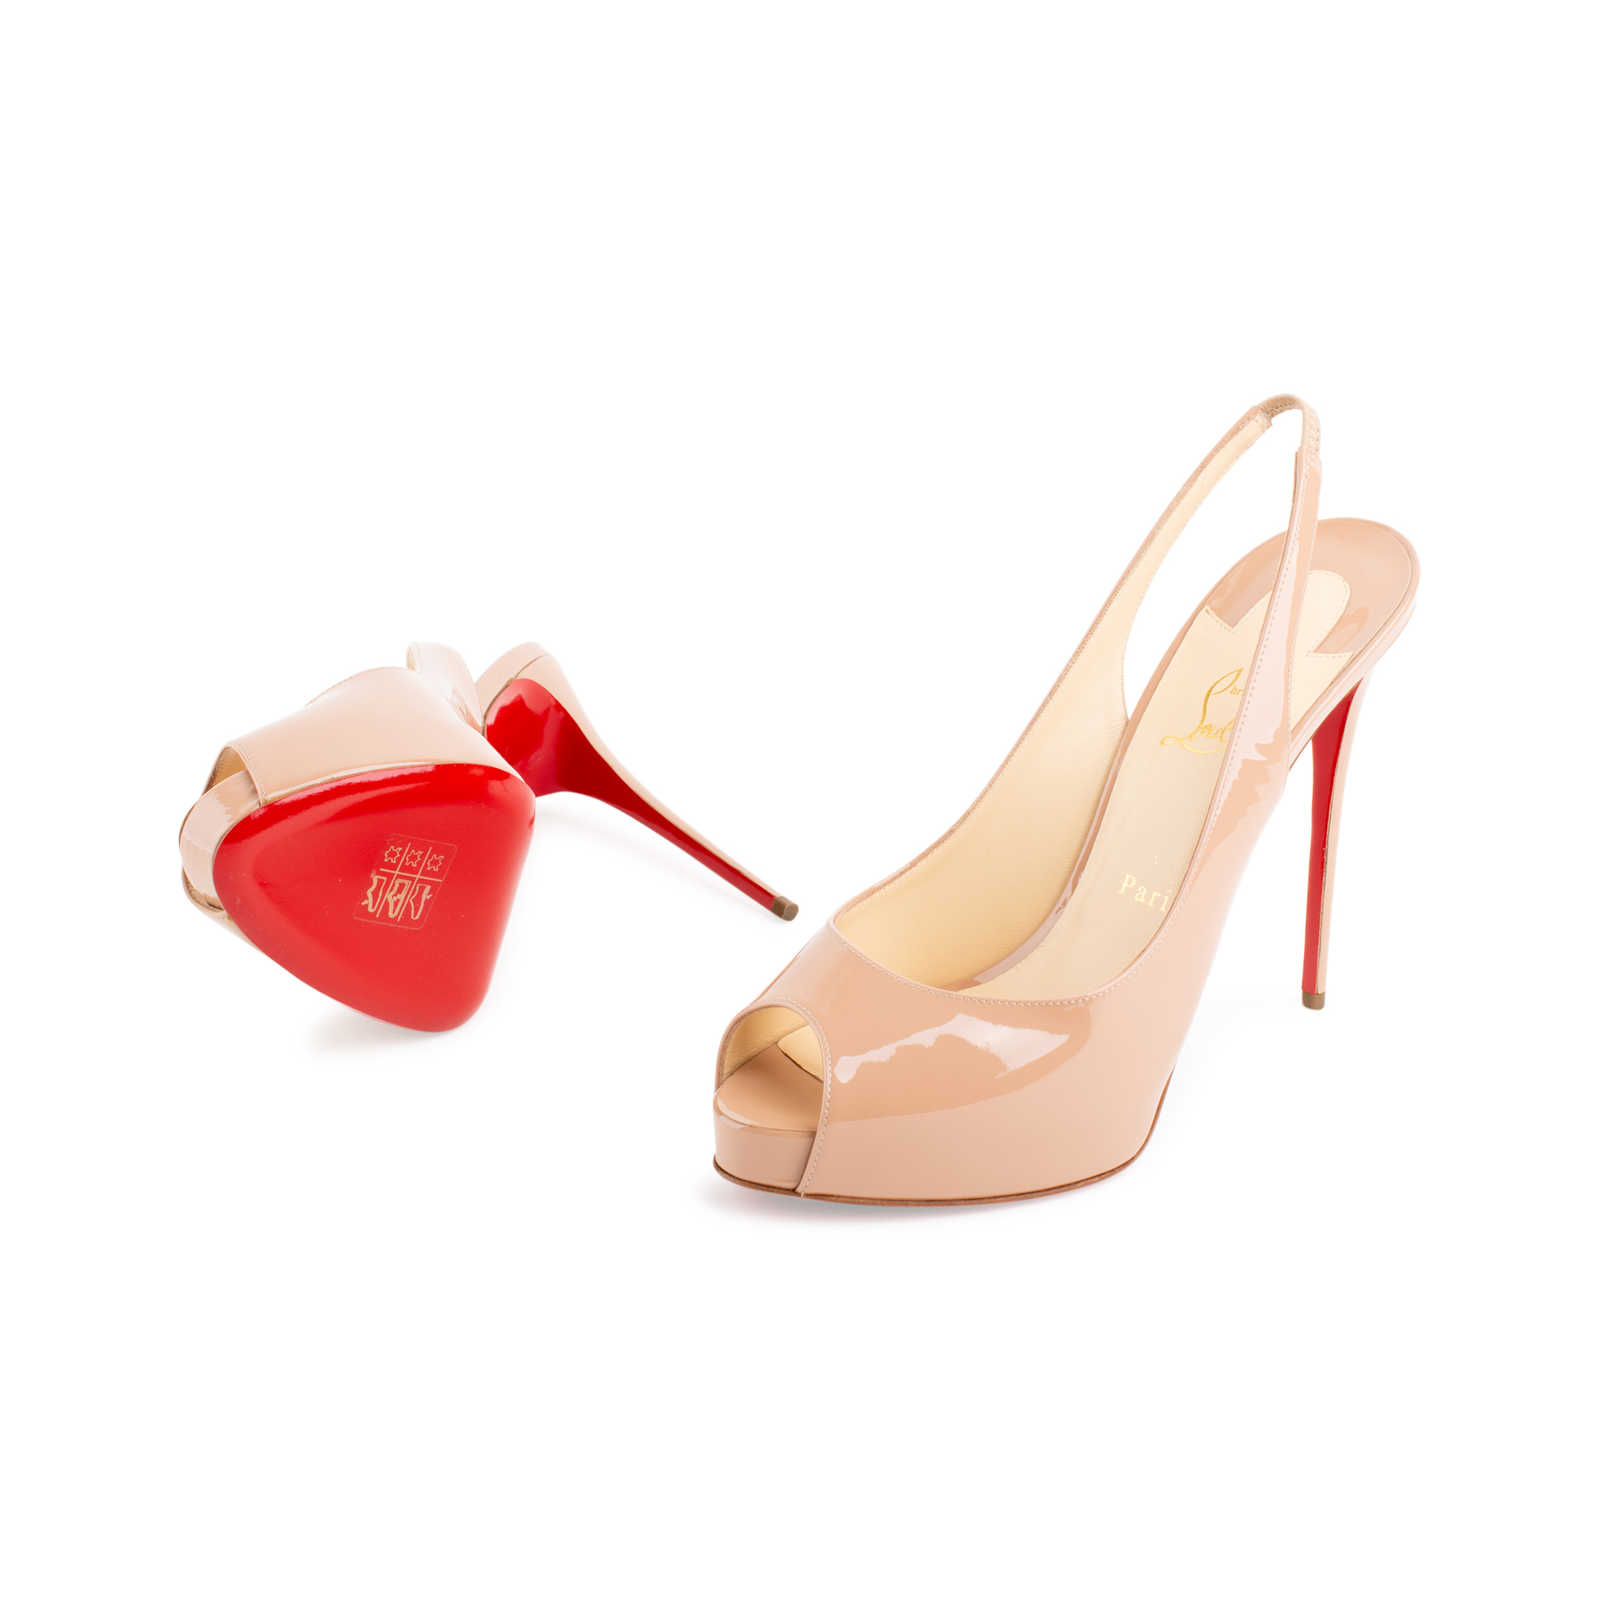 aa41309dca7 Authentic Second Hand Christian Louboutin Private Number Patent 120 ...